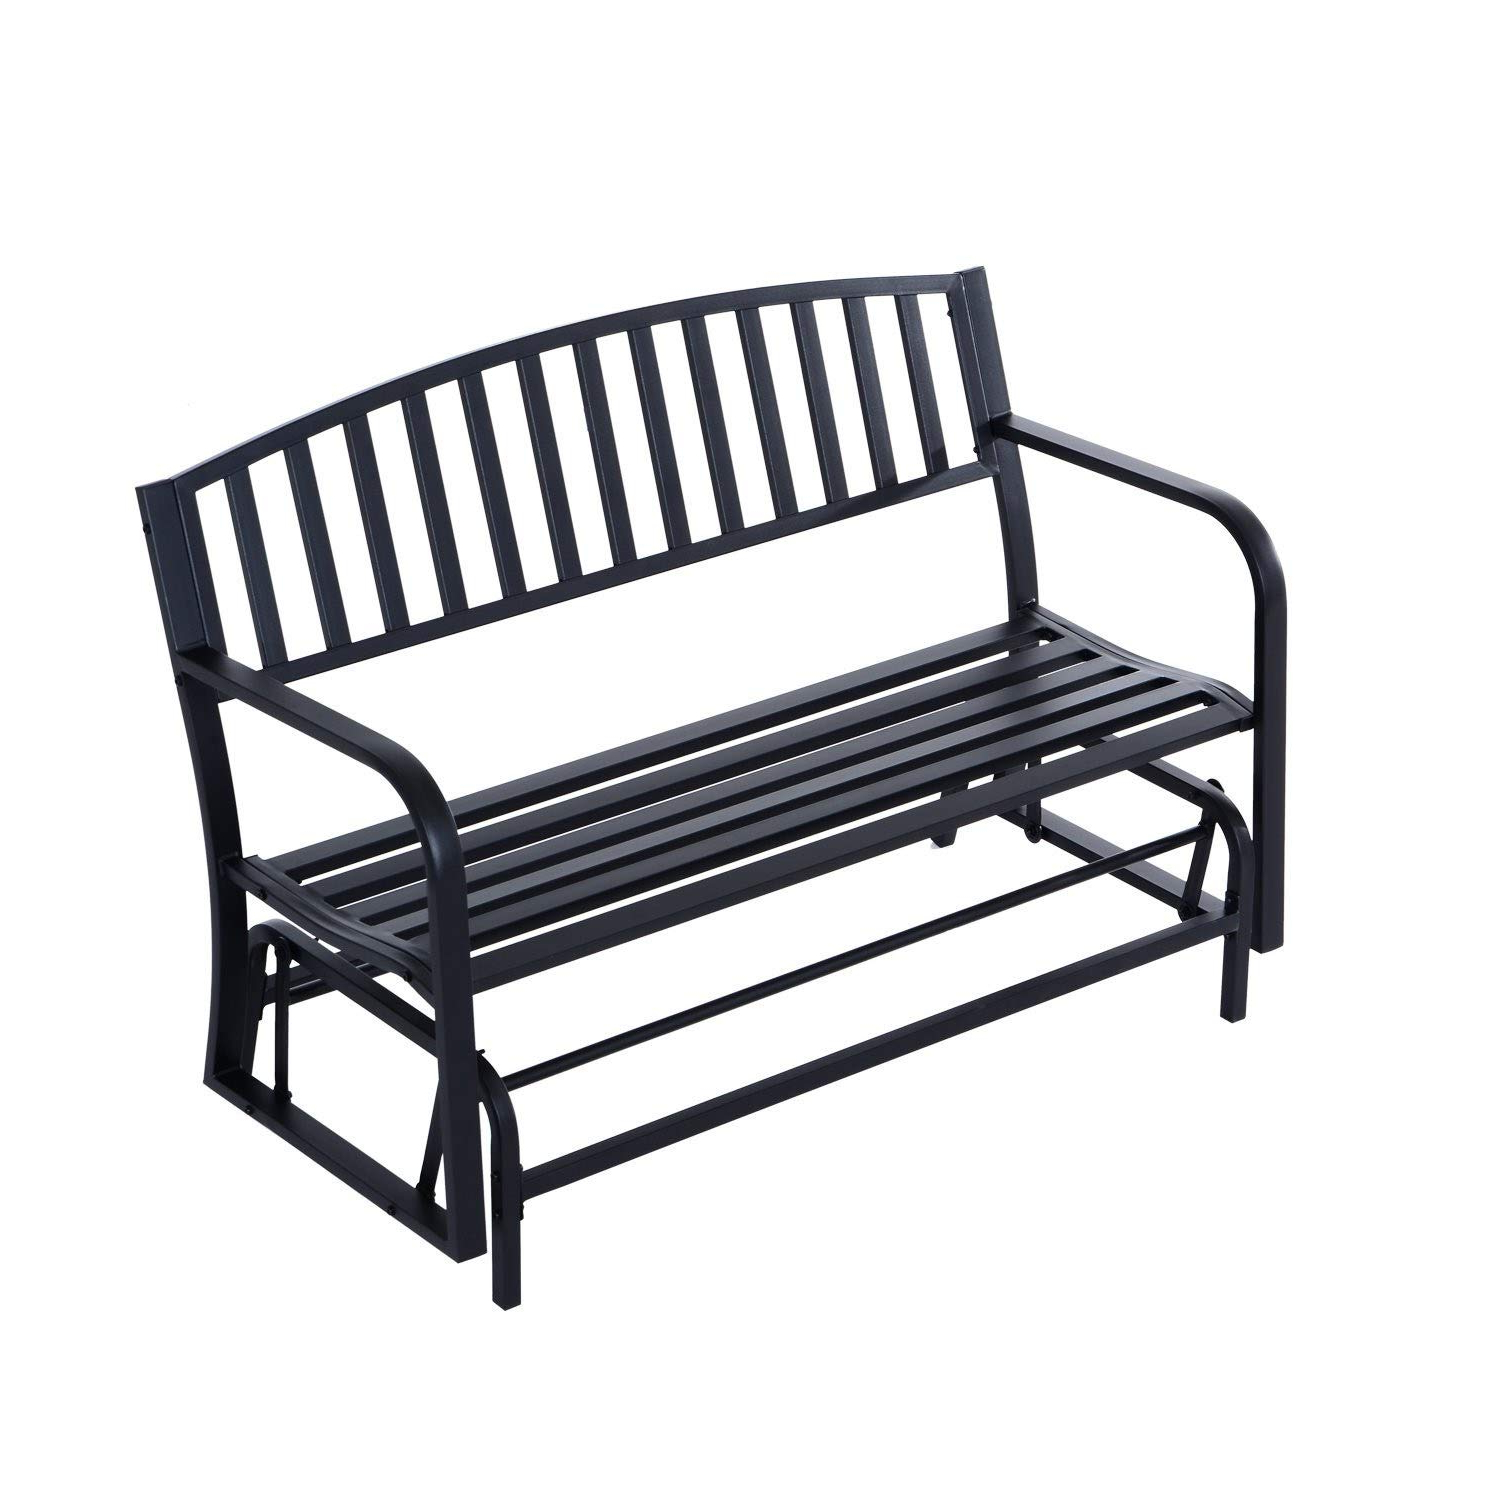 "Black Steel Patio Swing Glider Benches Powder Coated With Regard To Most Recently Released Amazon : Youwend 50"" Outdoor Steel Patio Swing Glider (View 8 of 30)"